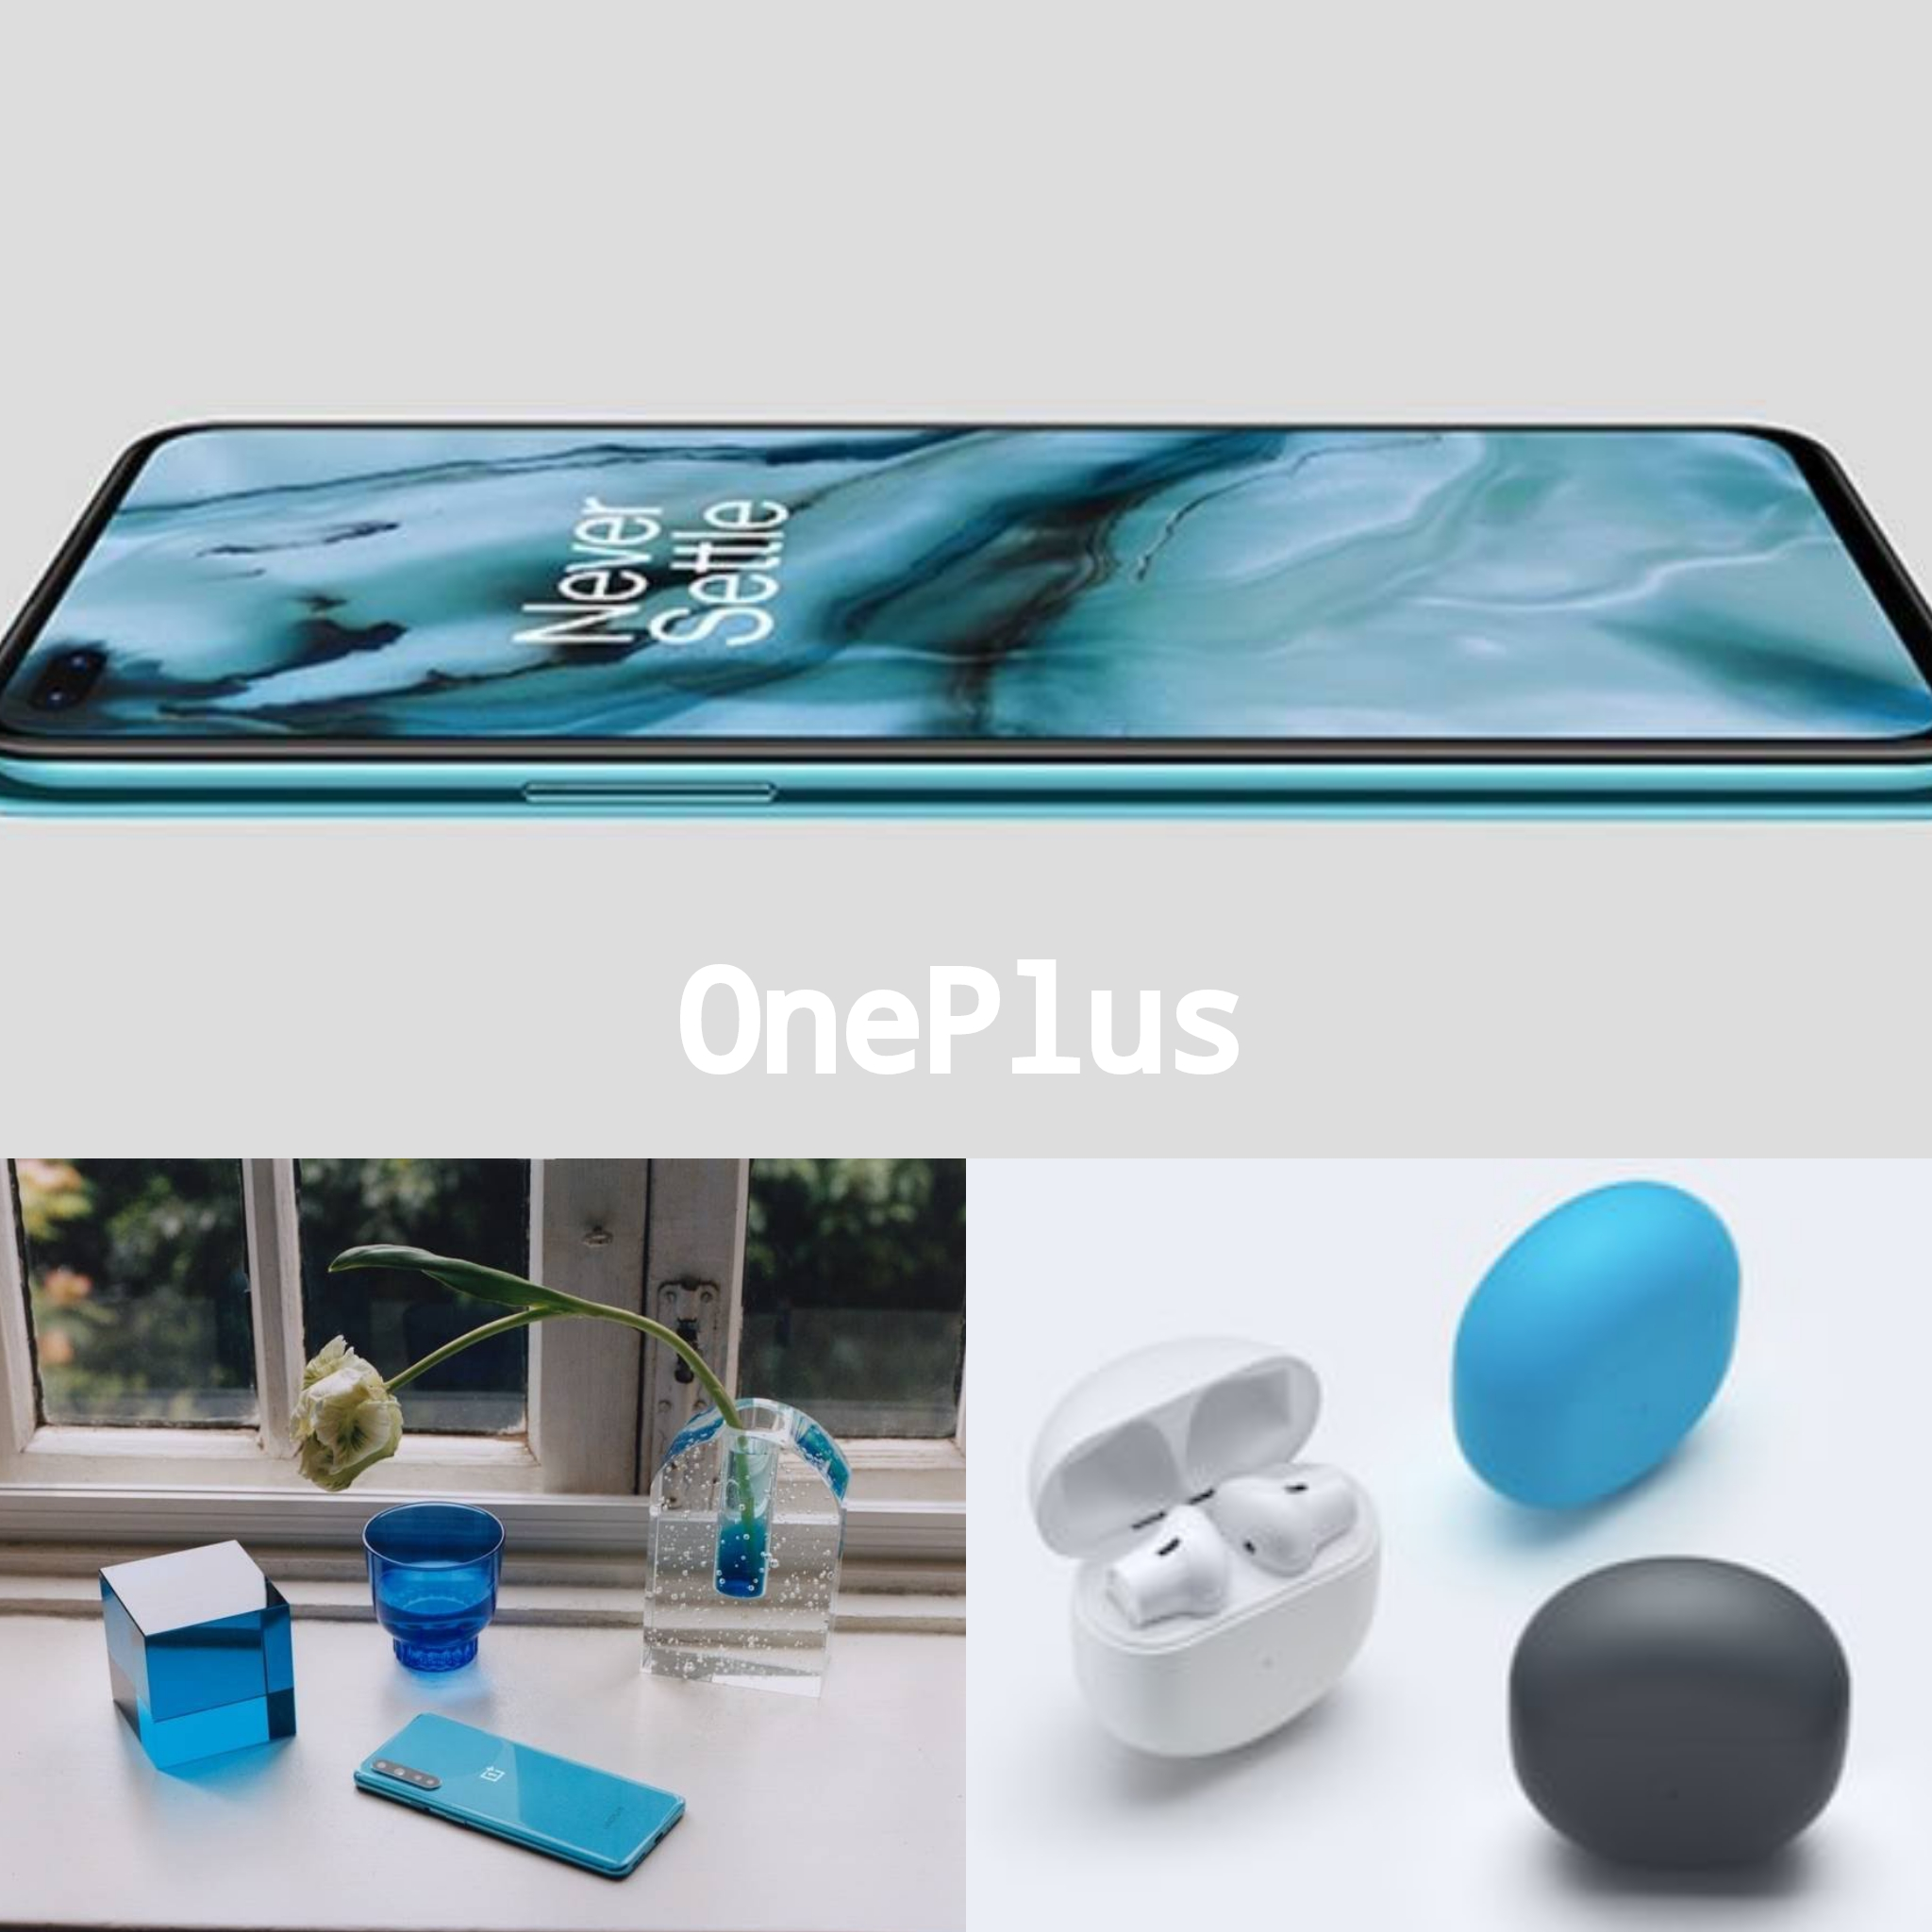 OnePlus Nord and OnePlus buds launched!